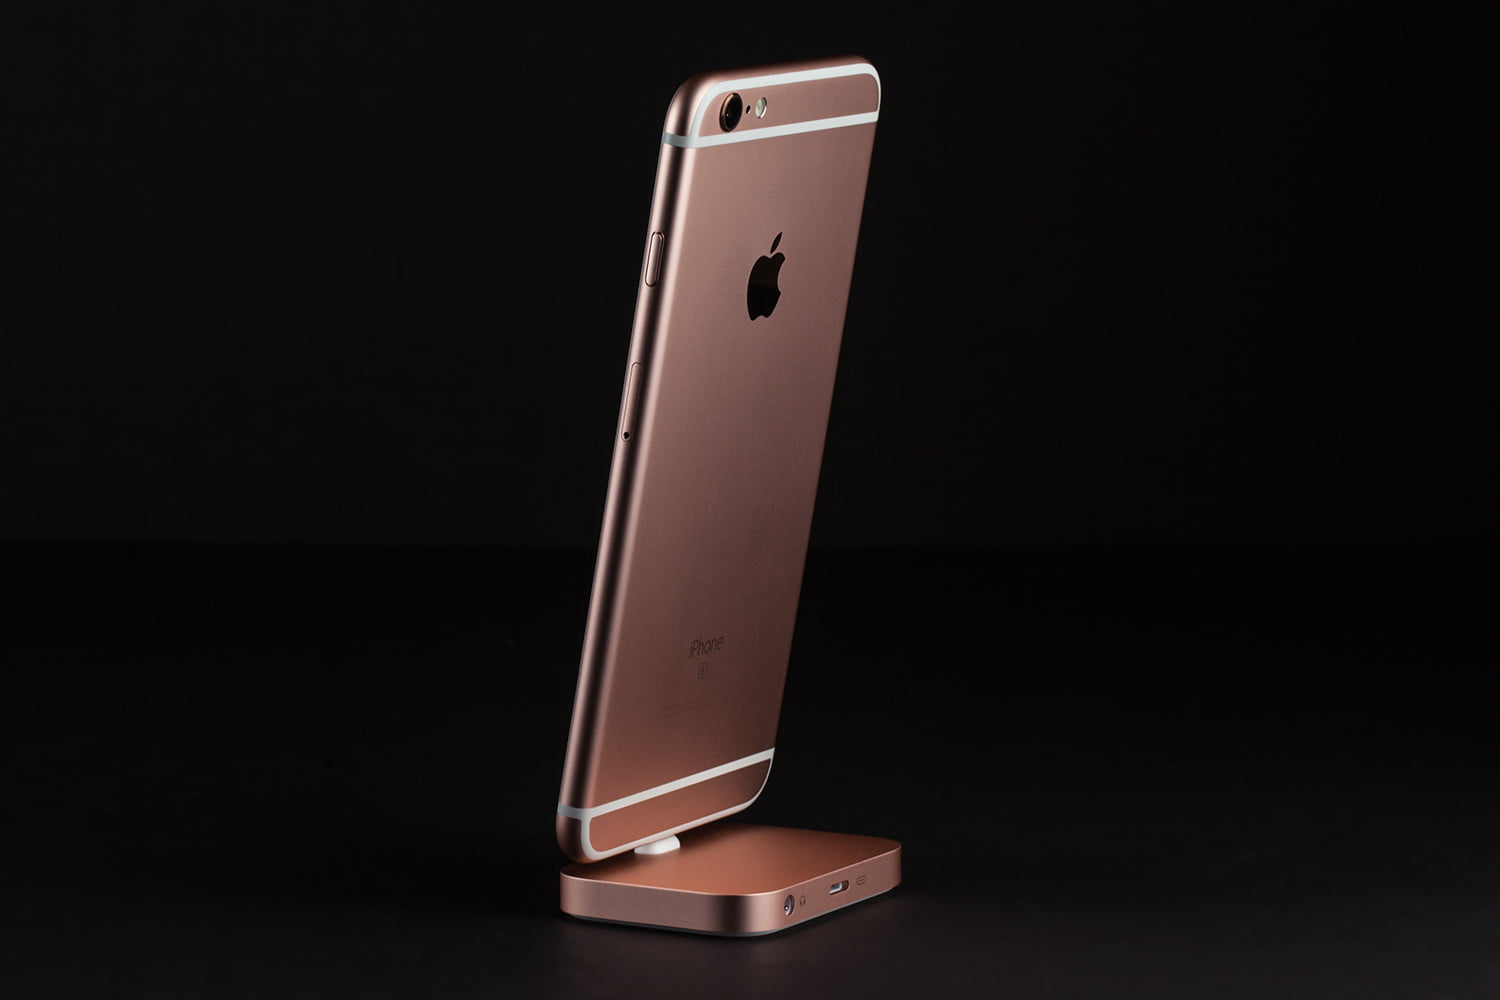 iphone s6 gold